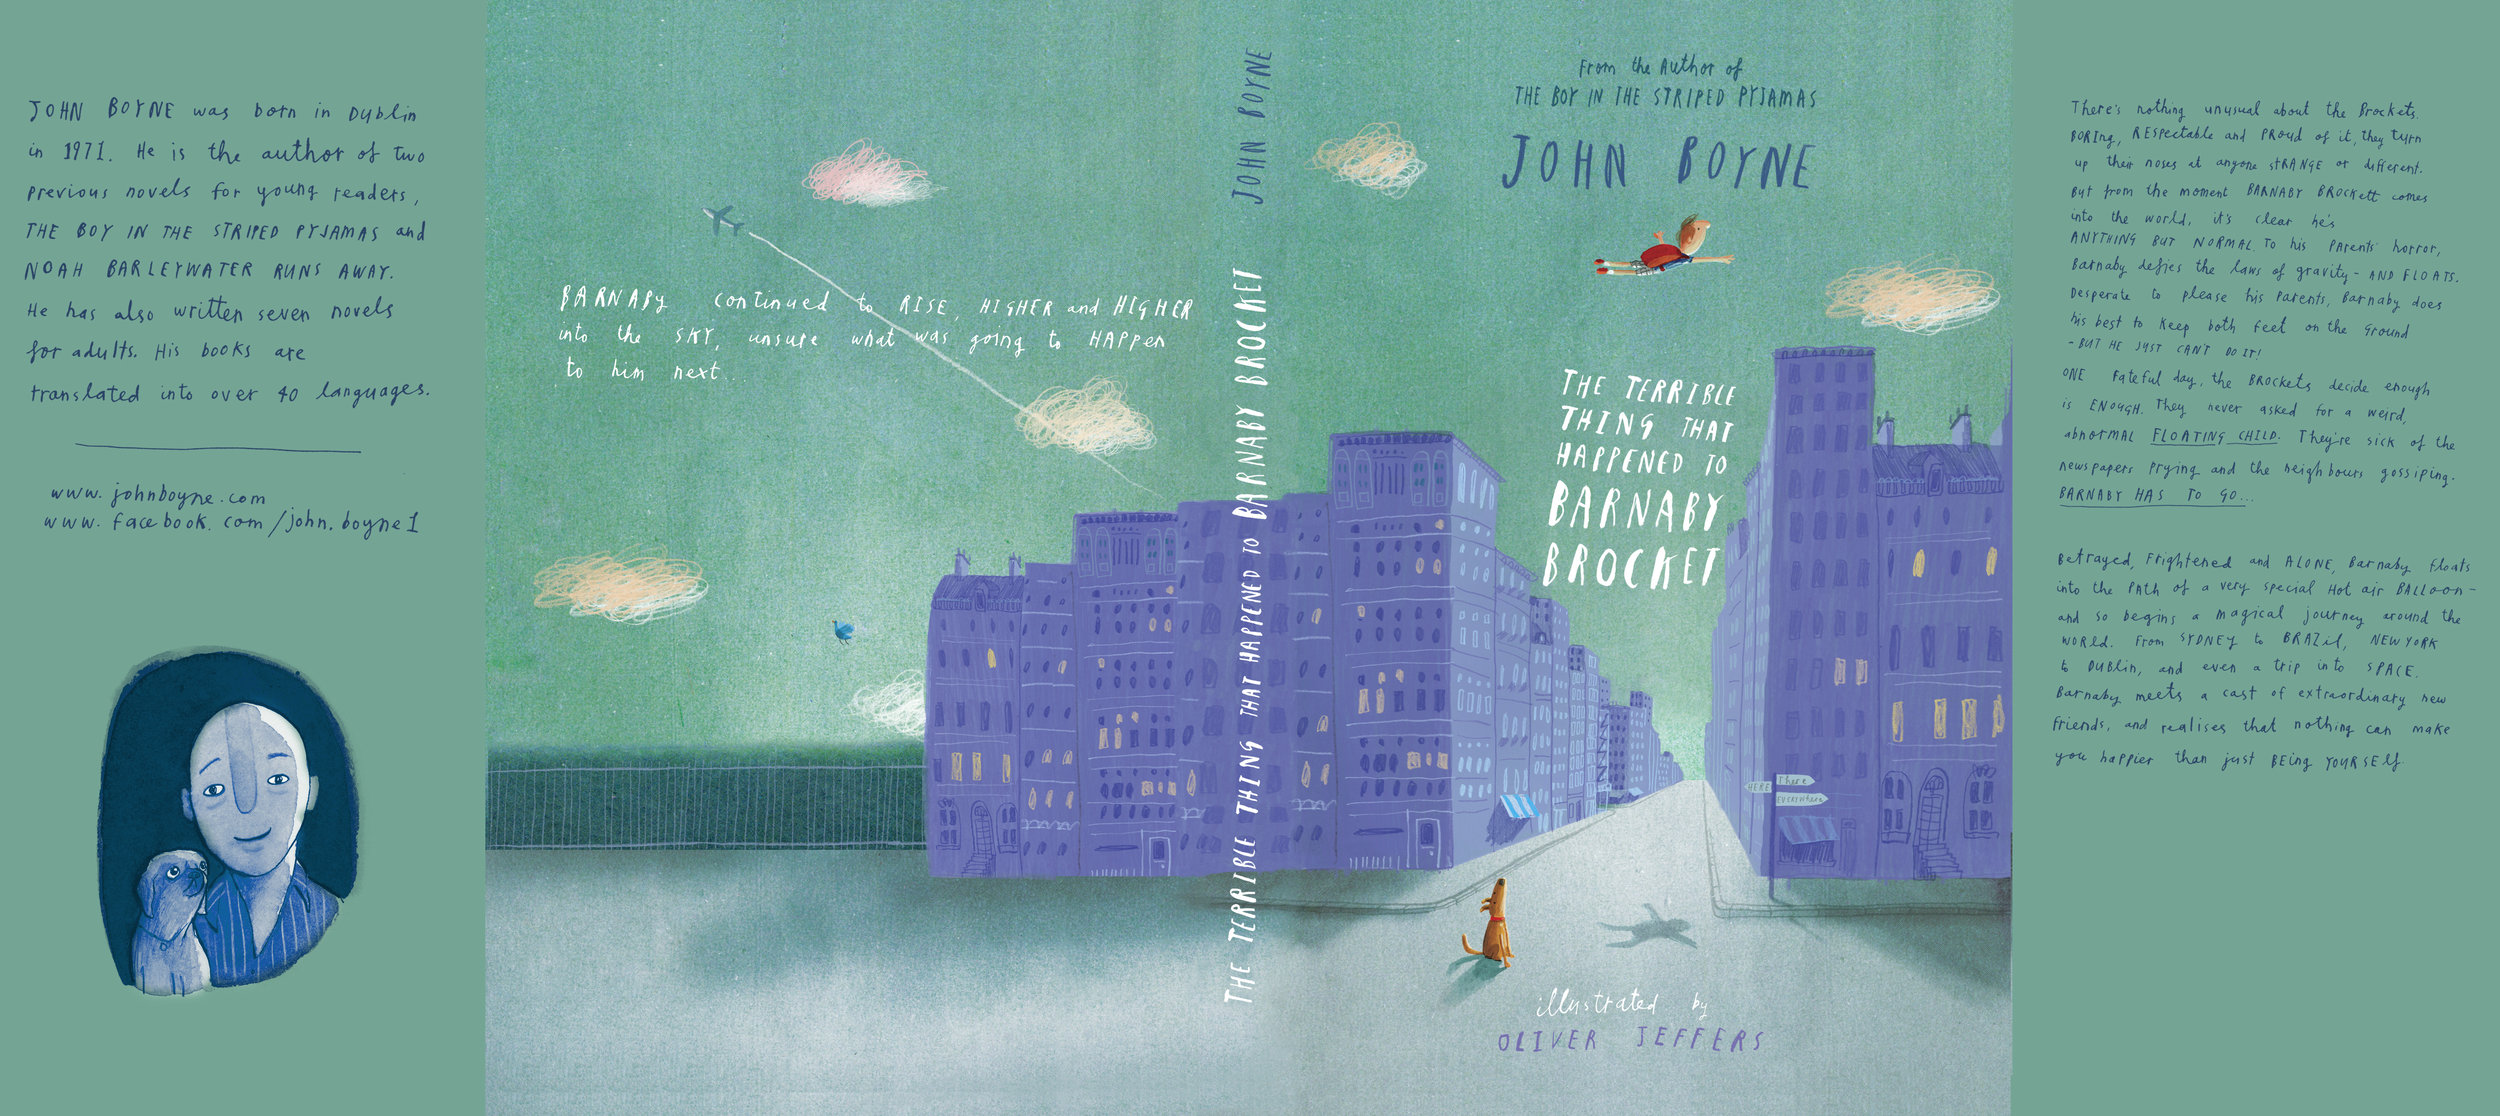 Cover Design for  The Terrible Thing That Happened to Barnary Brocket  by John Boyne